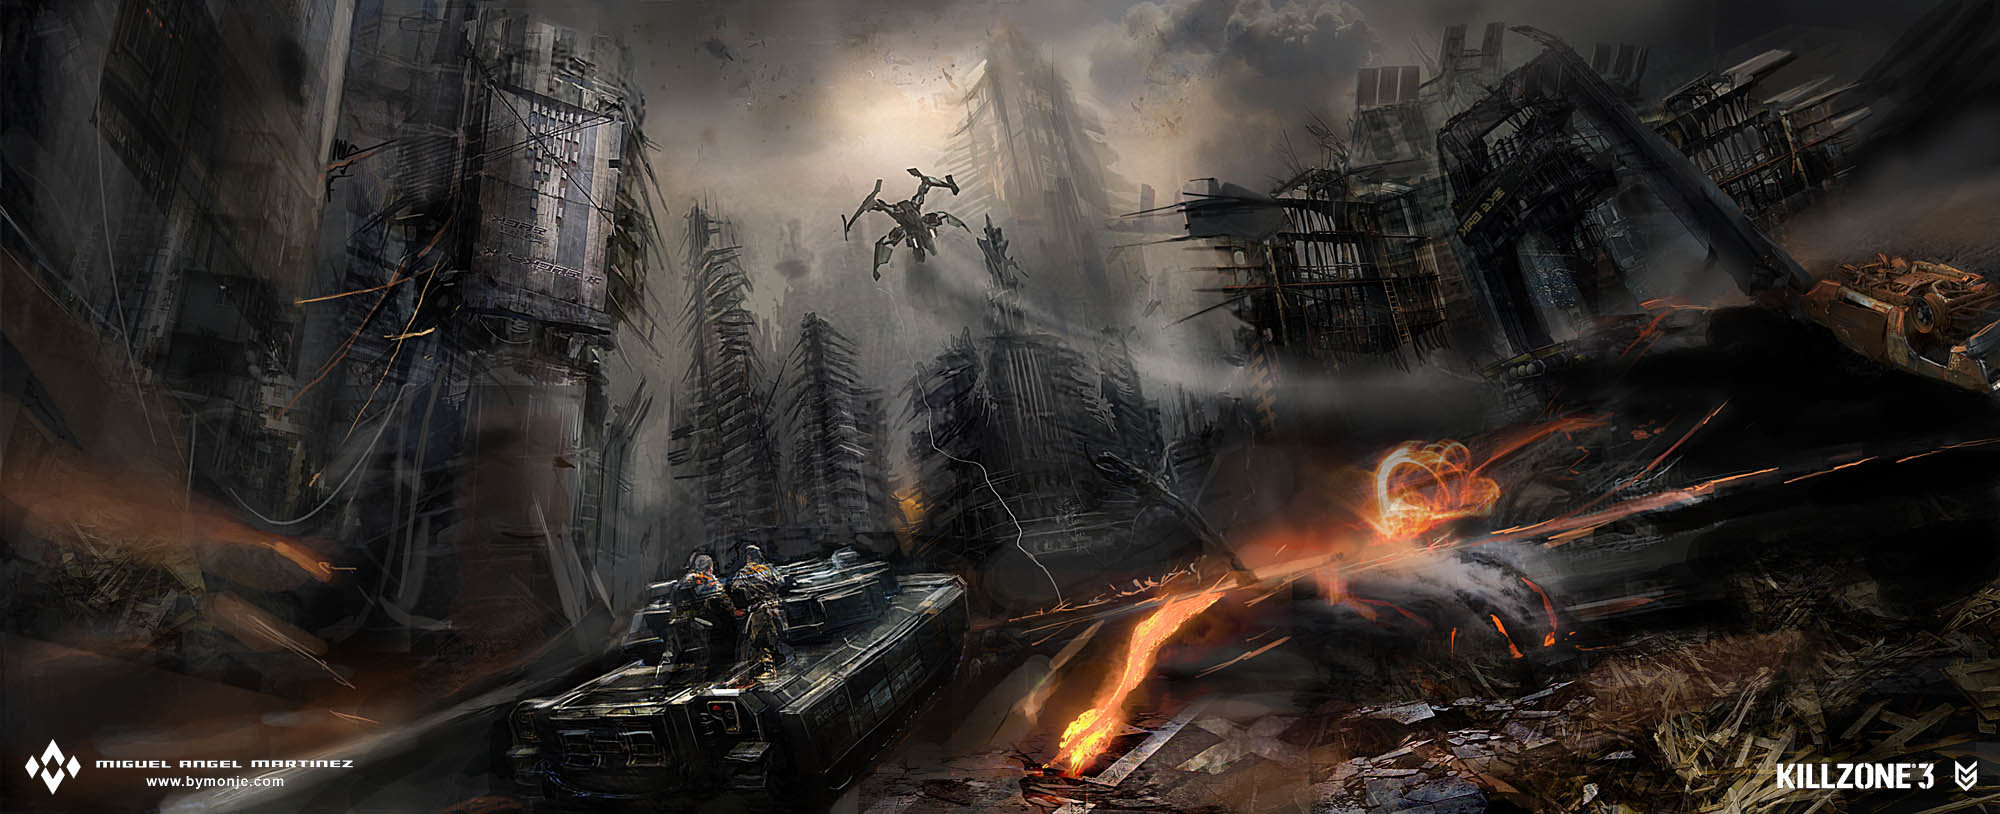 killzone-3-nuked-phyrrus-research-concept-art-miguel-bymonje